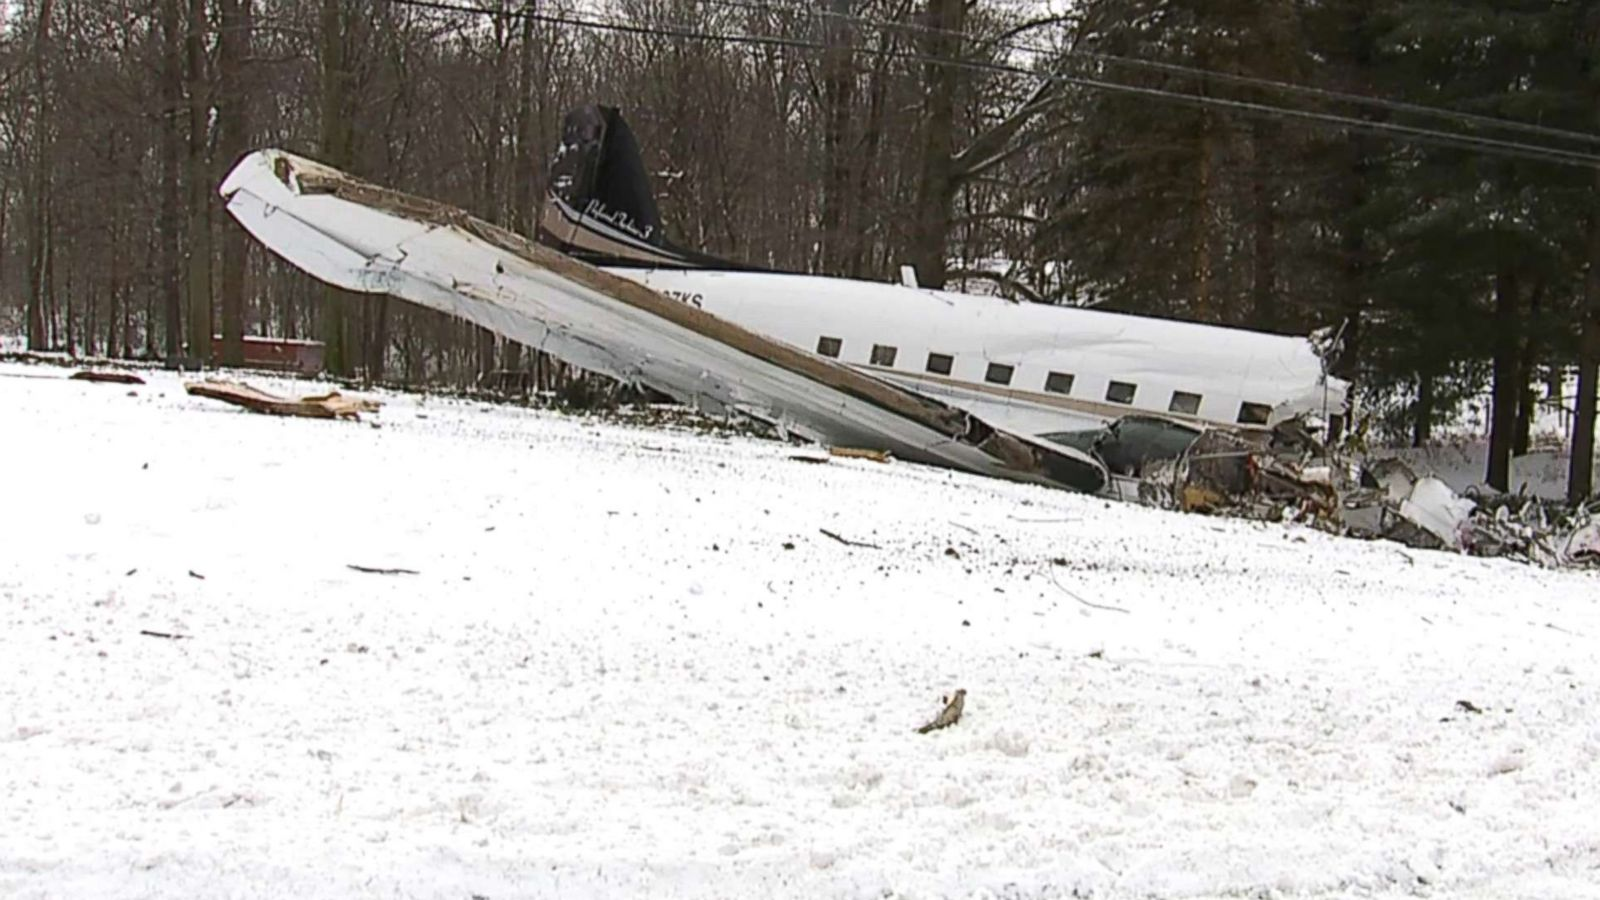 2 men dead in Ohio plane crash, with engine issues possibly